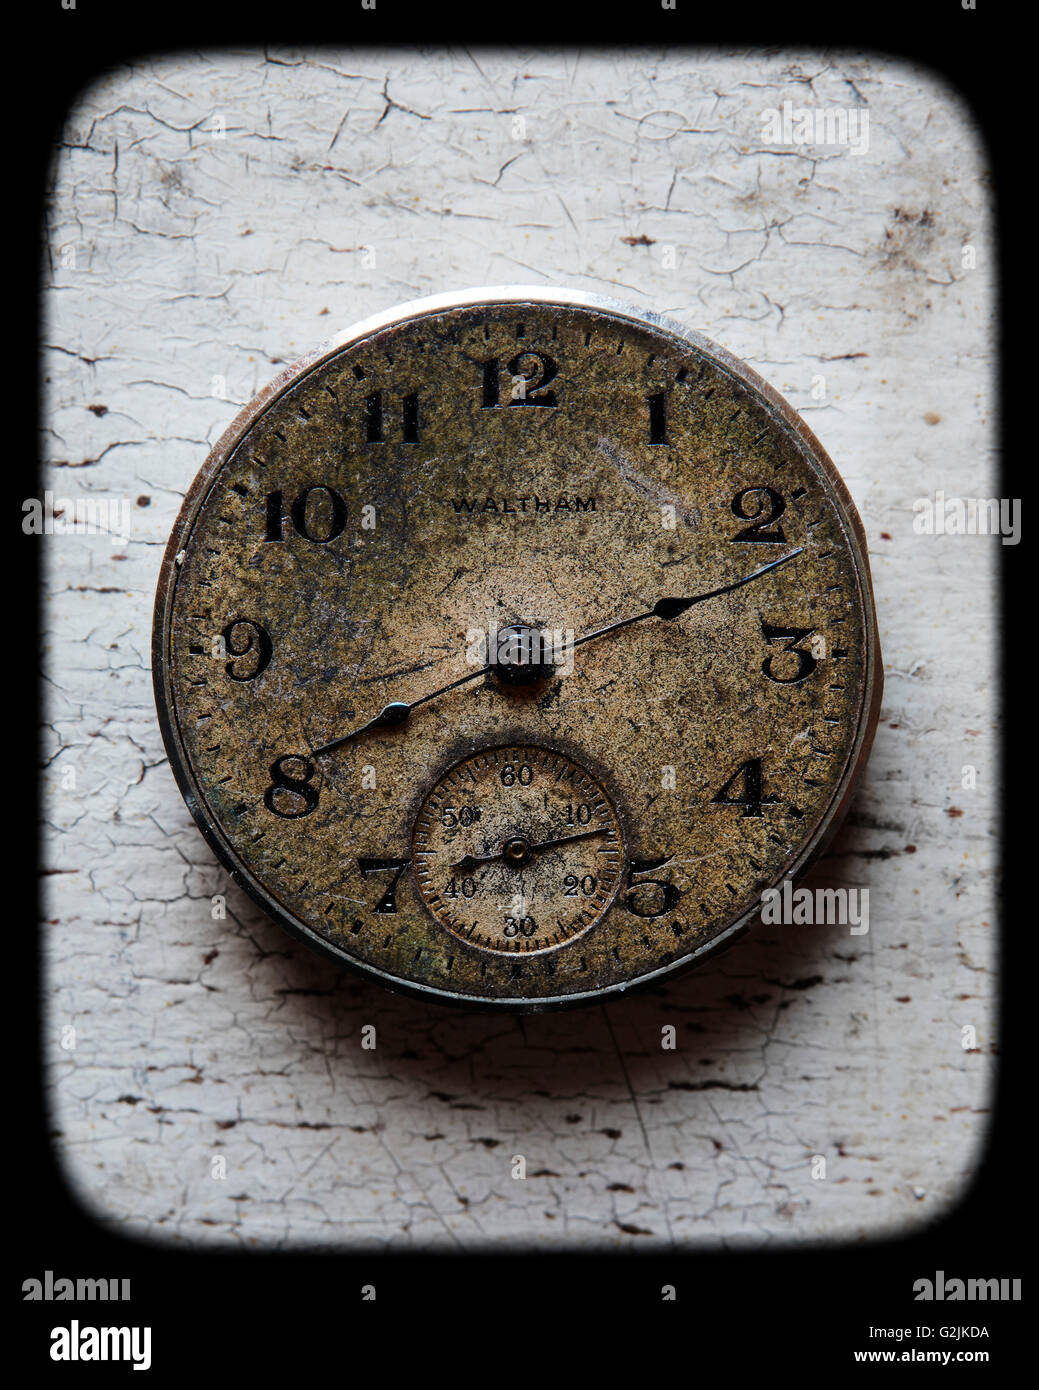 Old Watch Face - Stock Image